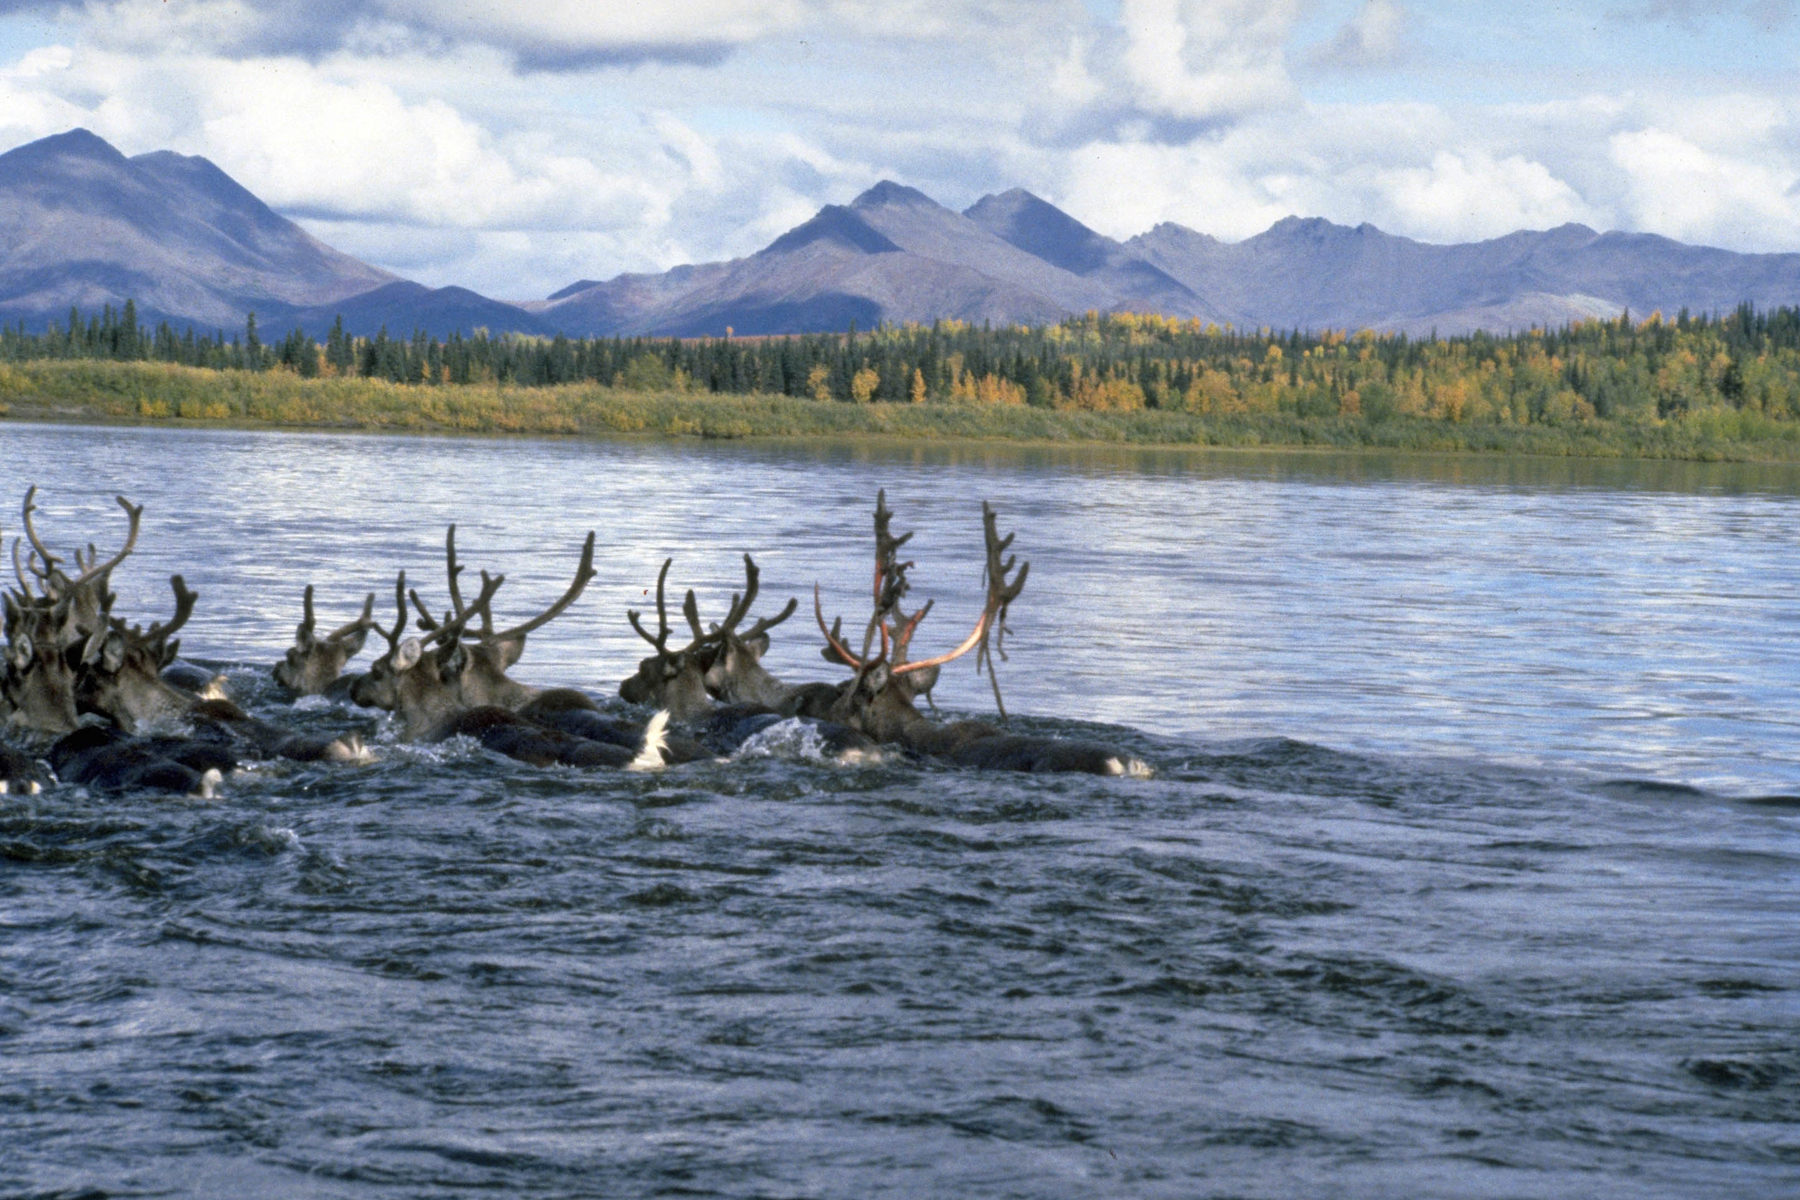 Caribou crossing the Kobuk River. By National Park Service.